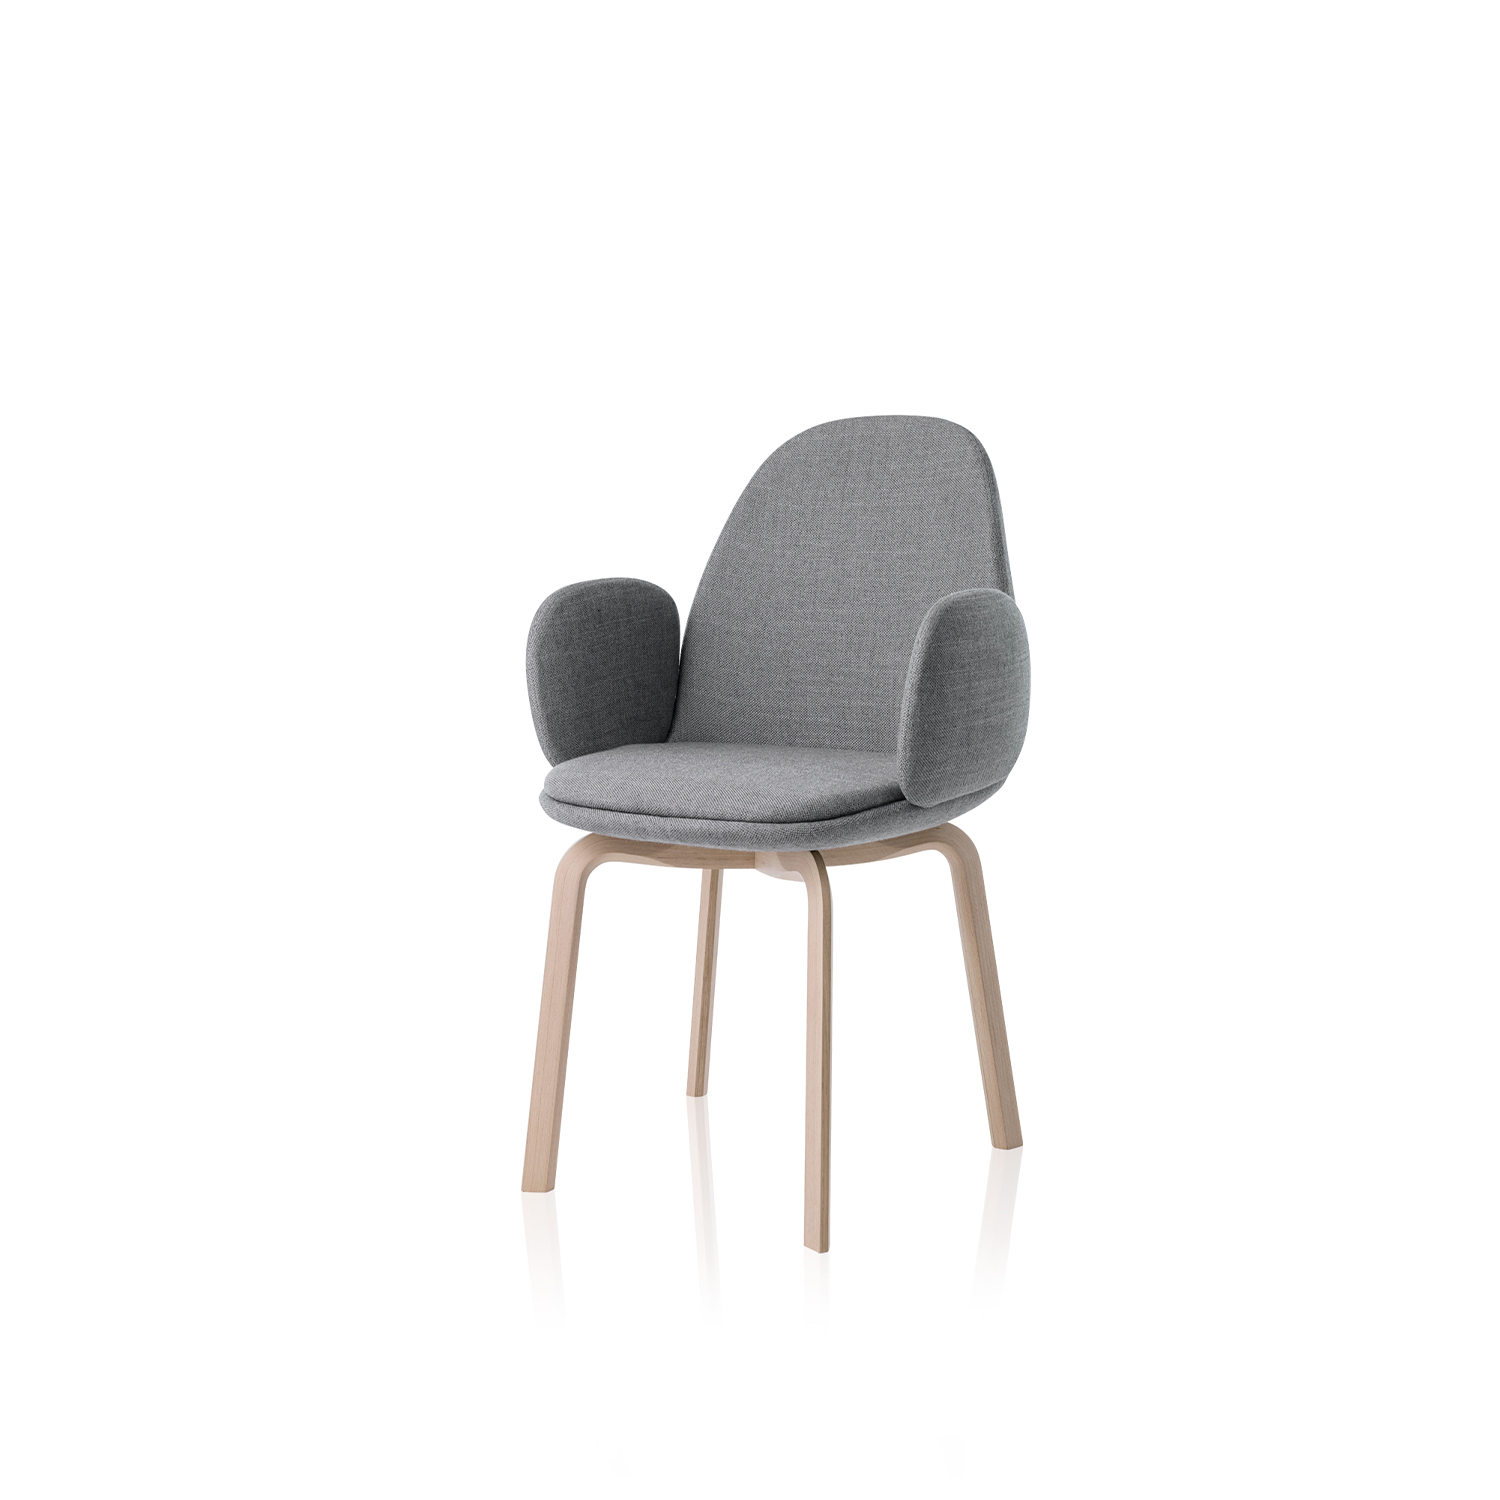 Sammen Armchair - The Sammen chair is available in two varieties: With or without armrests. The shell and seat cushion come fully upholstered in 6 different designer colours. 